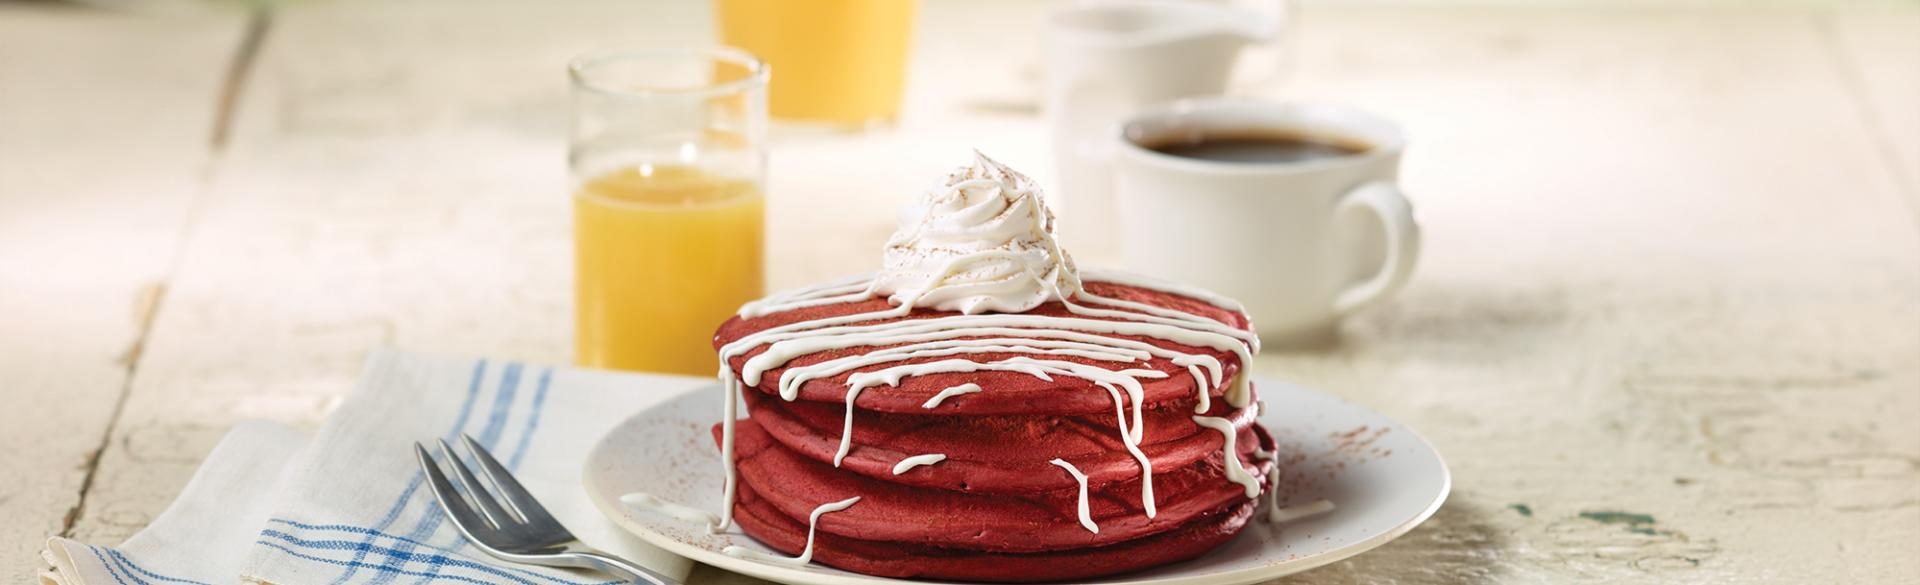 Red Velvet Pancakes at Anna's House in Grand Rapids